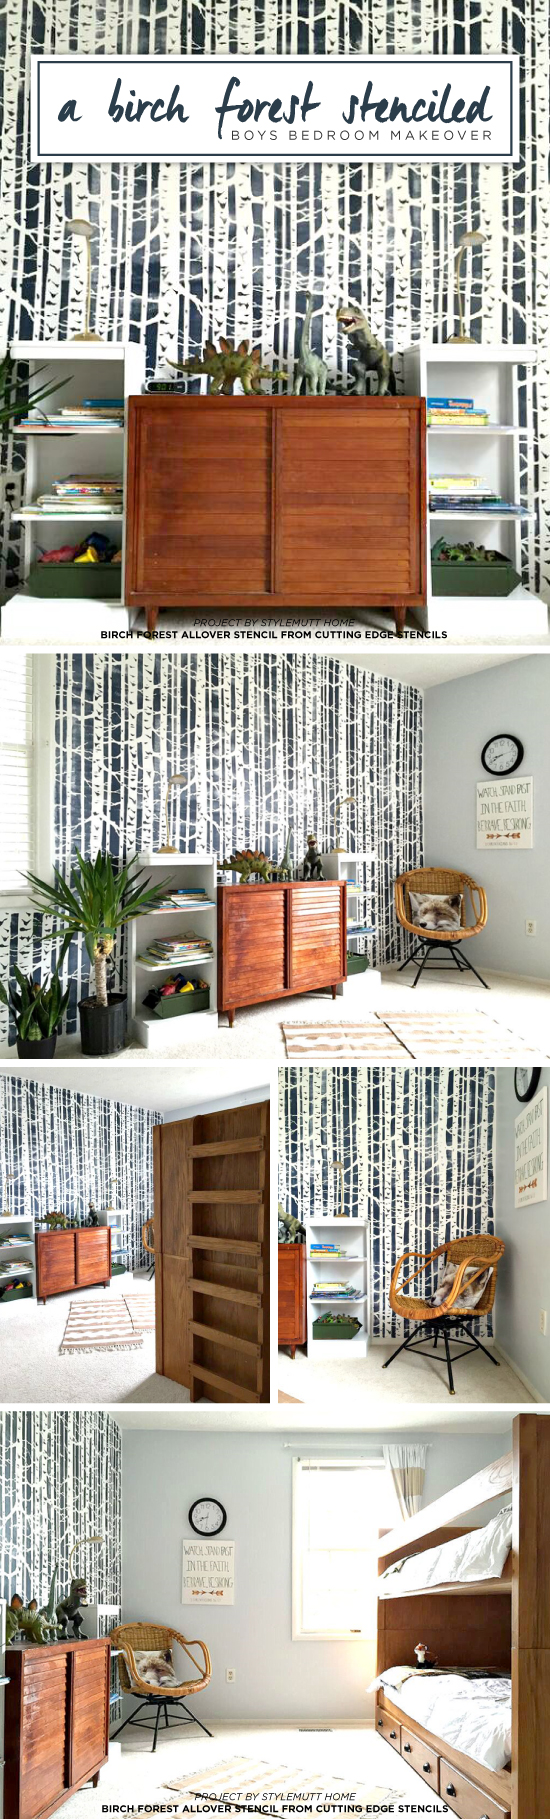 Cutting Edge Stencils shares a DIY stenciled boys bedroom accent wall using the Birch Forest Allover Stencil in navy and white. http://www.cuttingedgestencils.com/allover-stencil-birch-forest.html